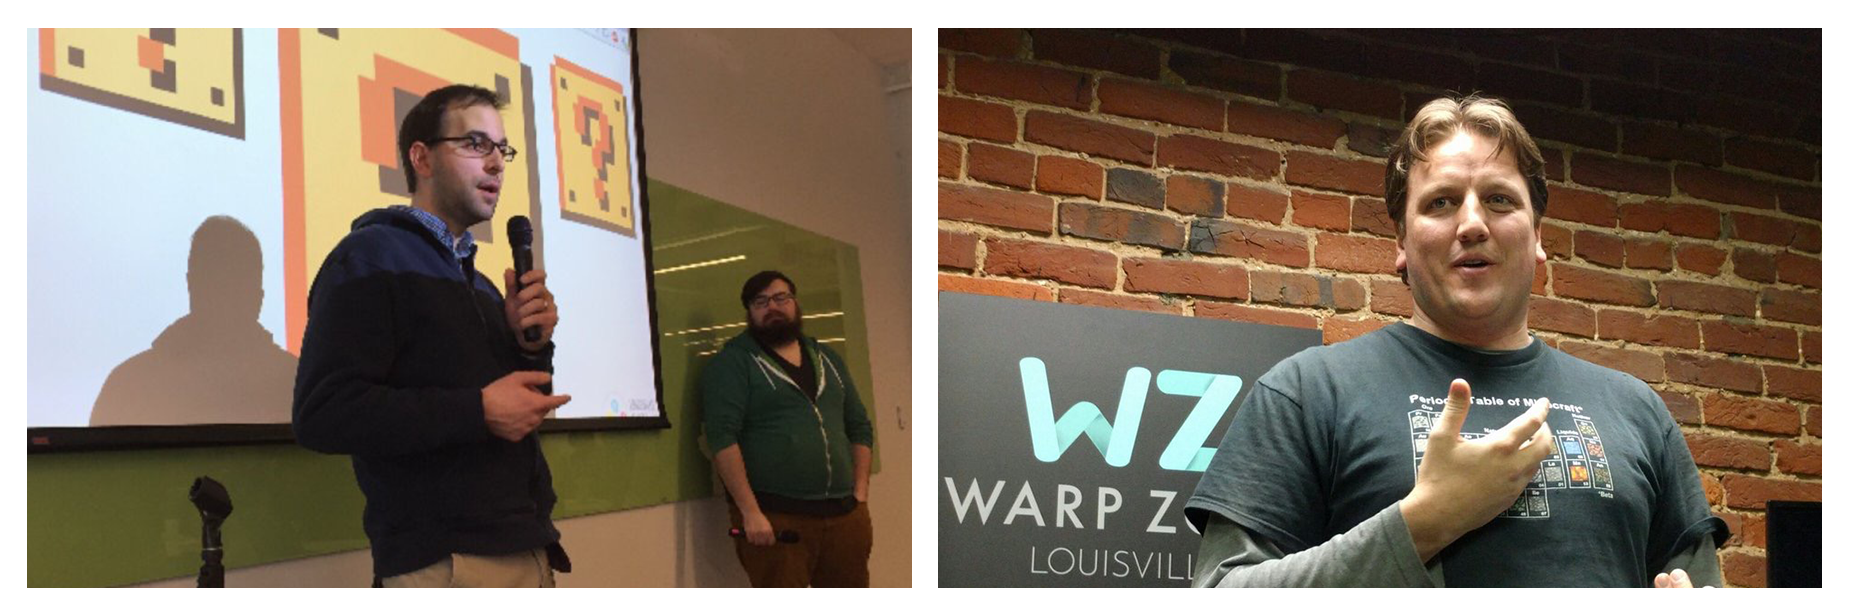 Left, Stephen Abrams and Alex Bezuska, Louisville Makes Games Board members speaking at Humana DEC | (right) Joseph Baird of Third Rail Games speaking at Warp Zone Louisville game developer